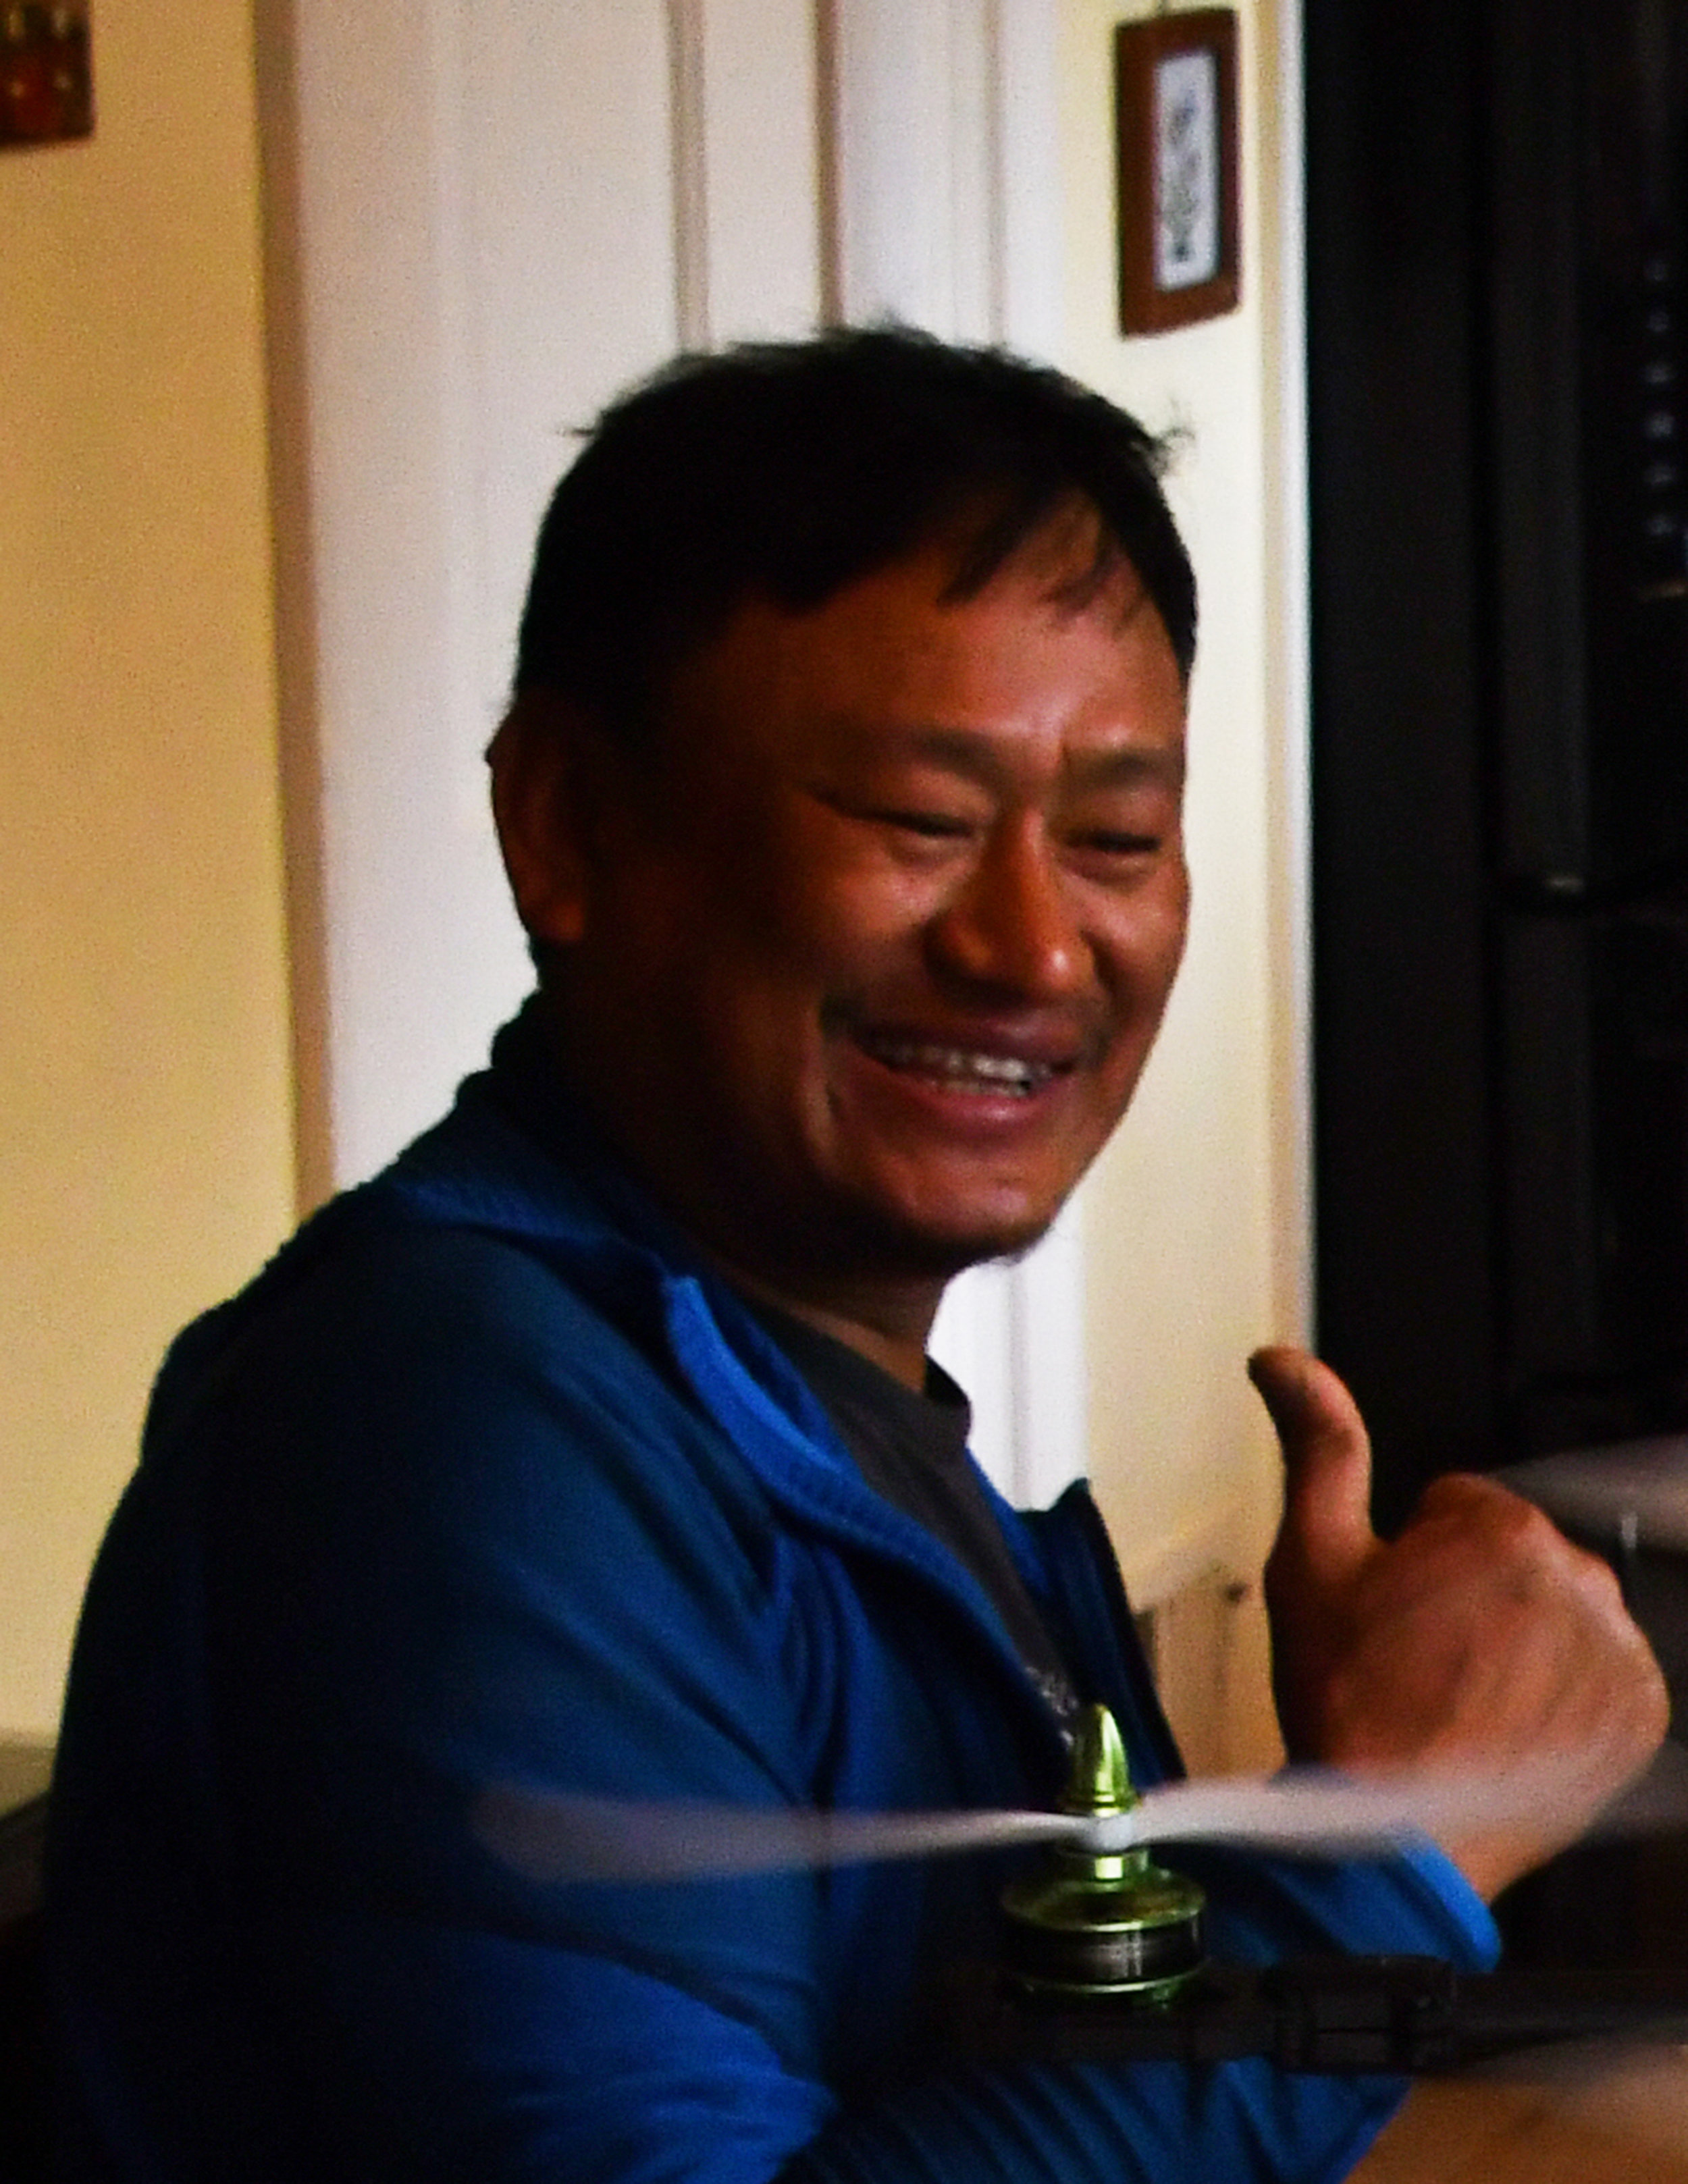 mck nepal 2017  best ang thumbs up spinup DSC_4700.jpg